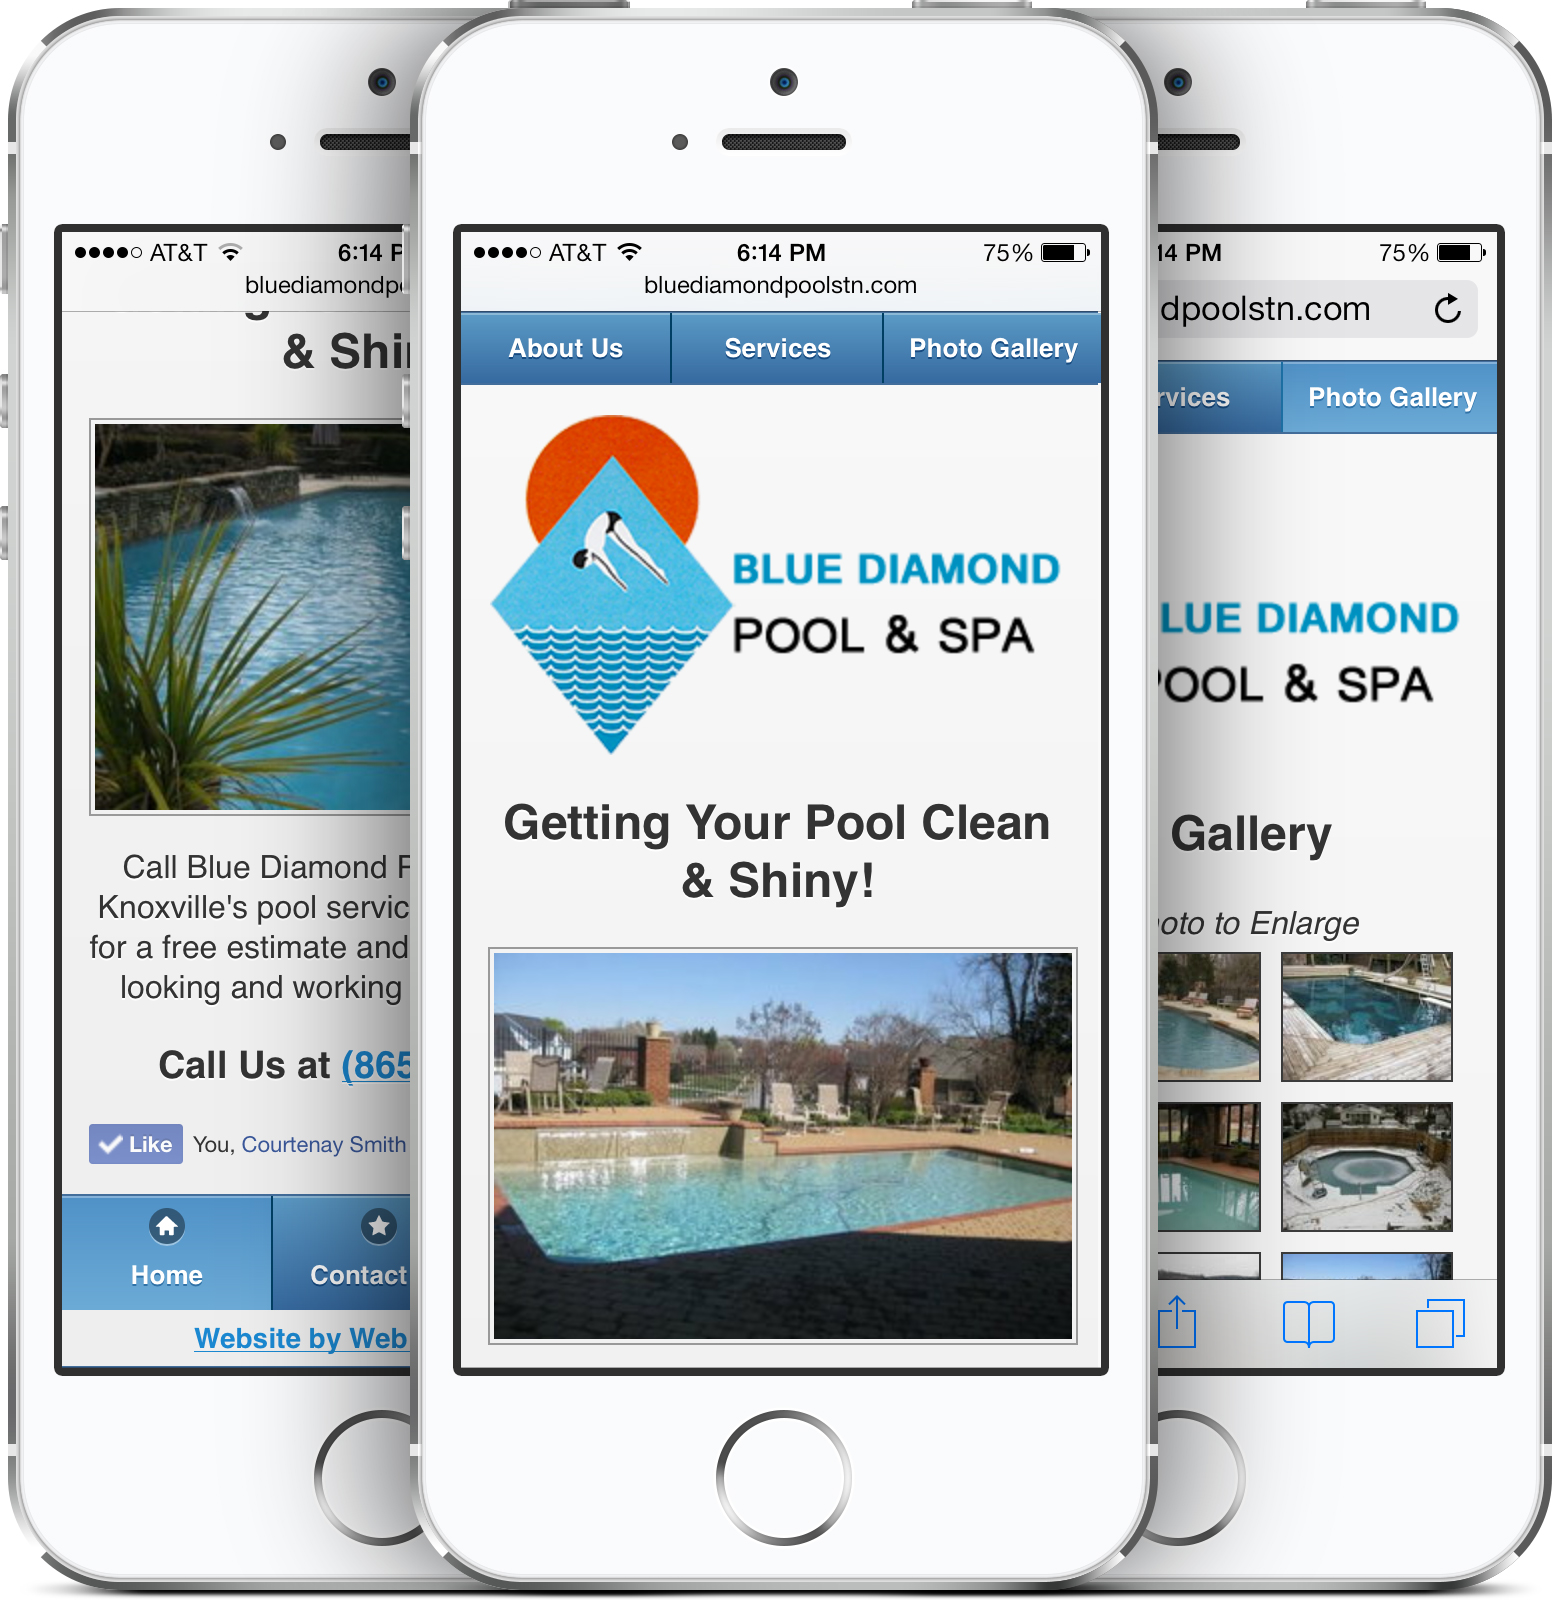 Blue Diamond Pool & Spa on an iPhone